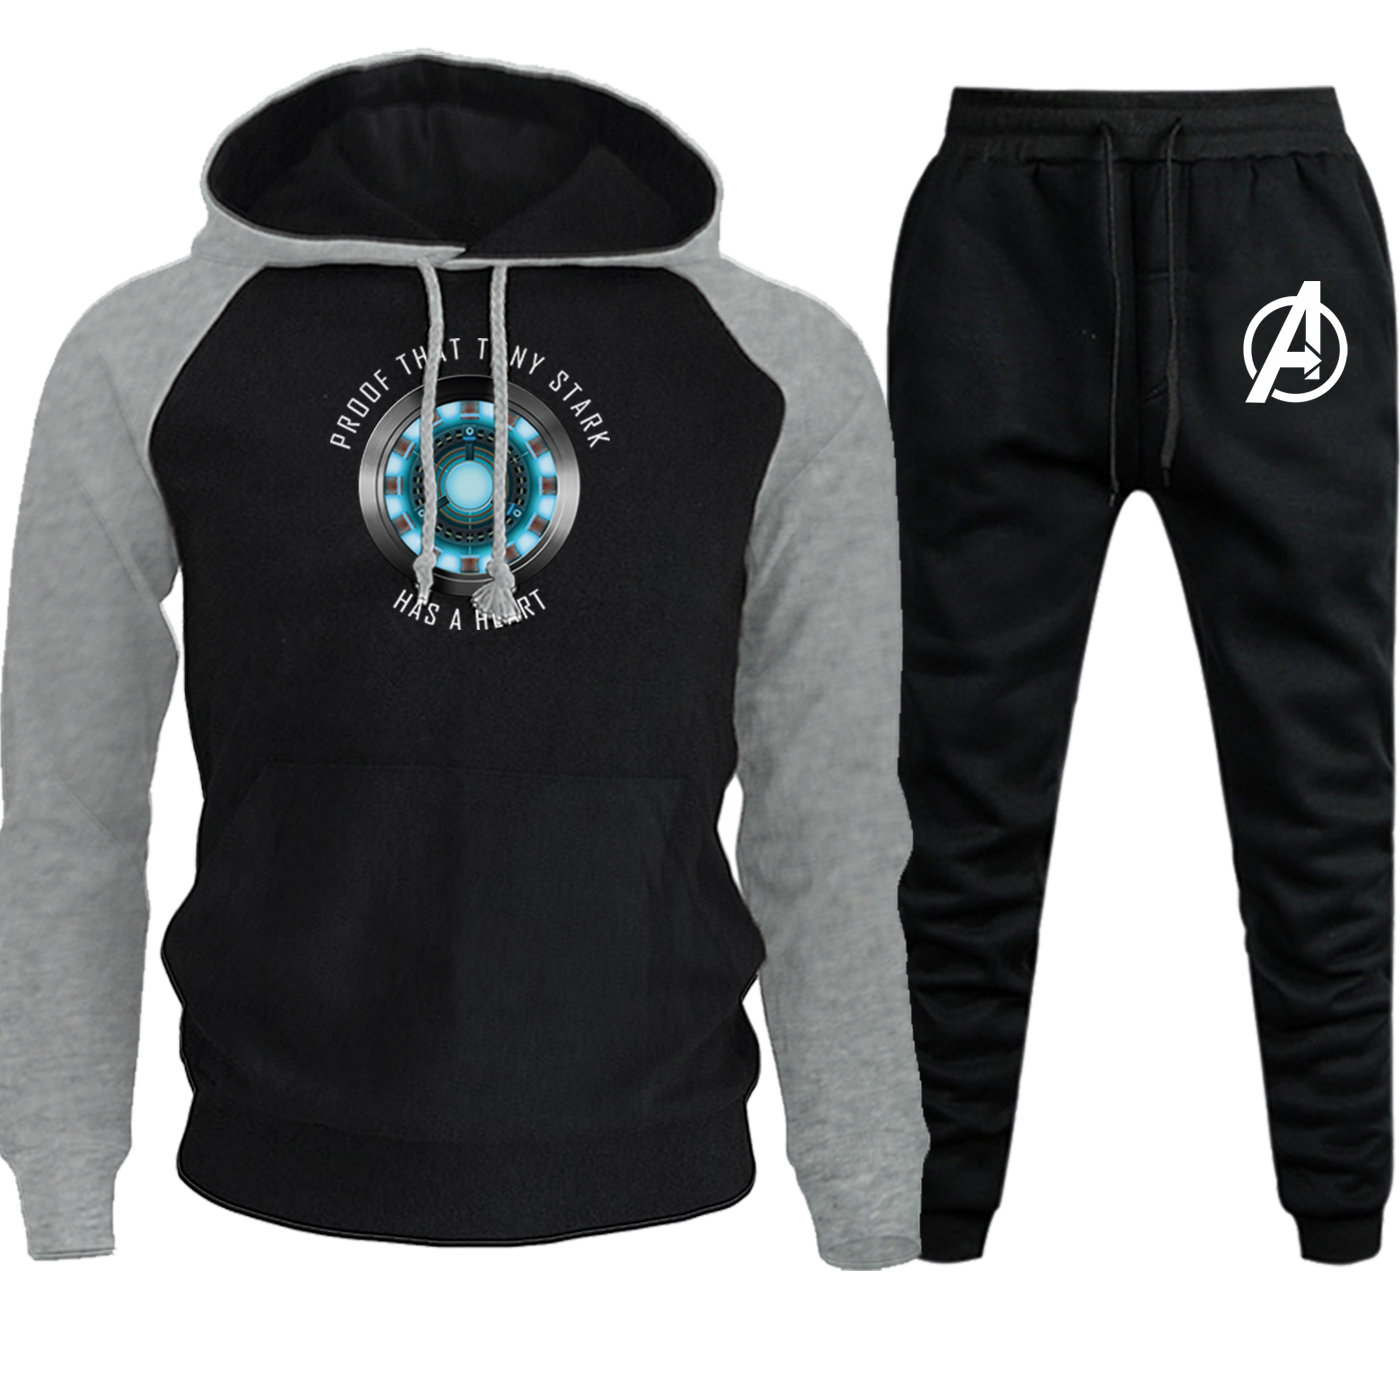 Tony Stark Hoodie New Autumn Winter Iron Man Streetwear Men Raglan Suit Hooded The Avengers Fleece Sweatshirt+Pants 2 Piece Set